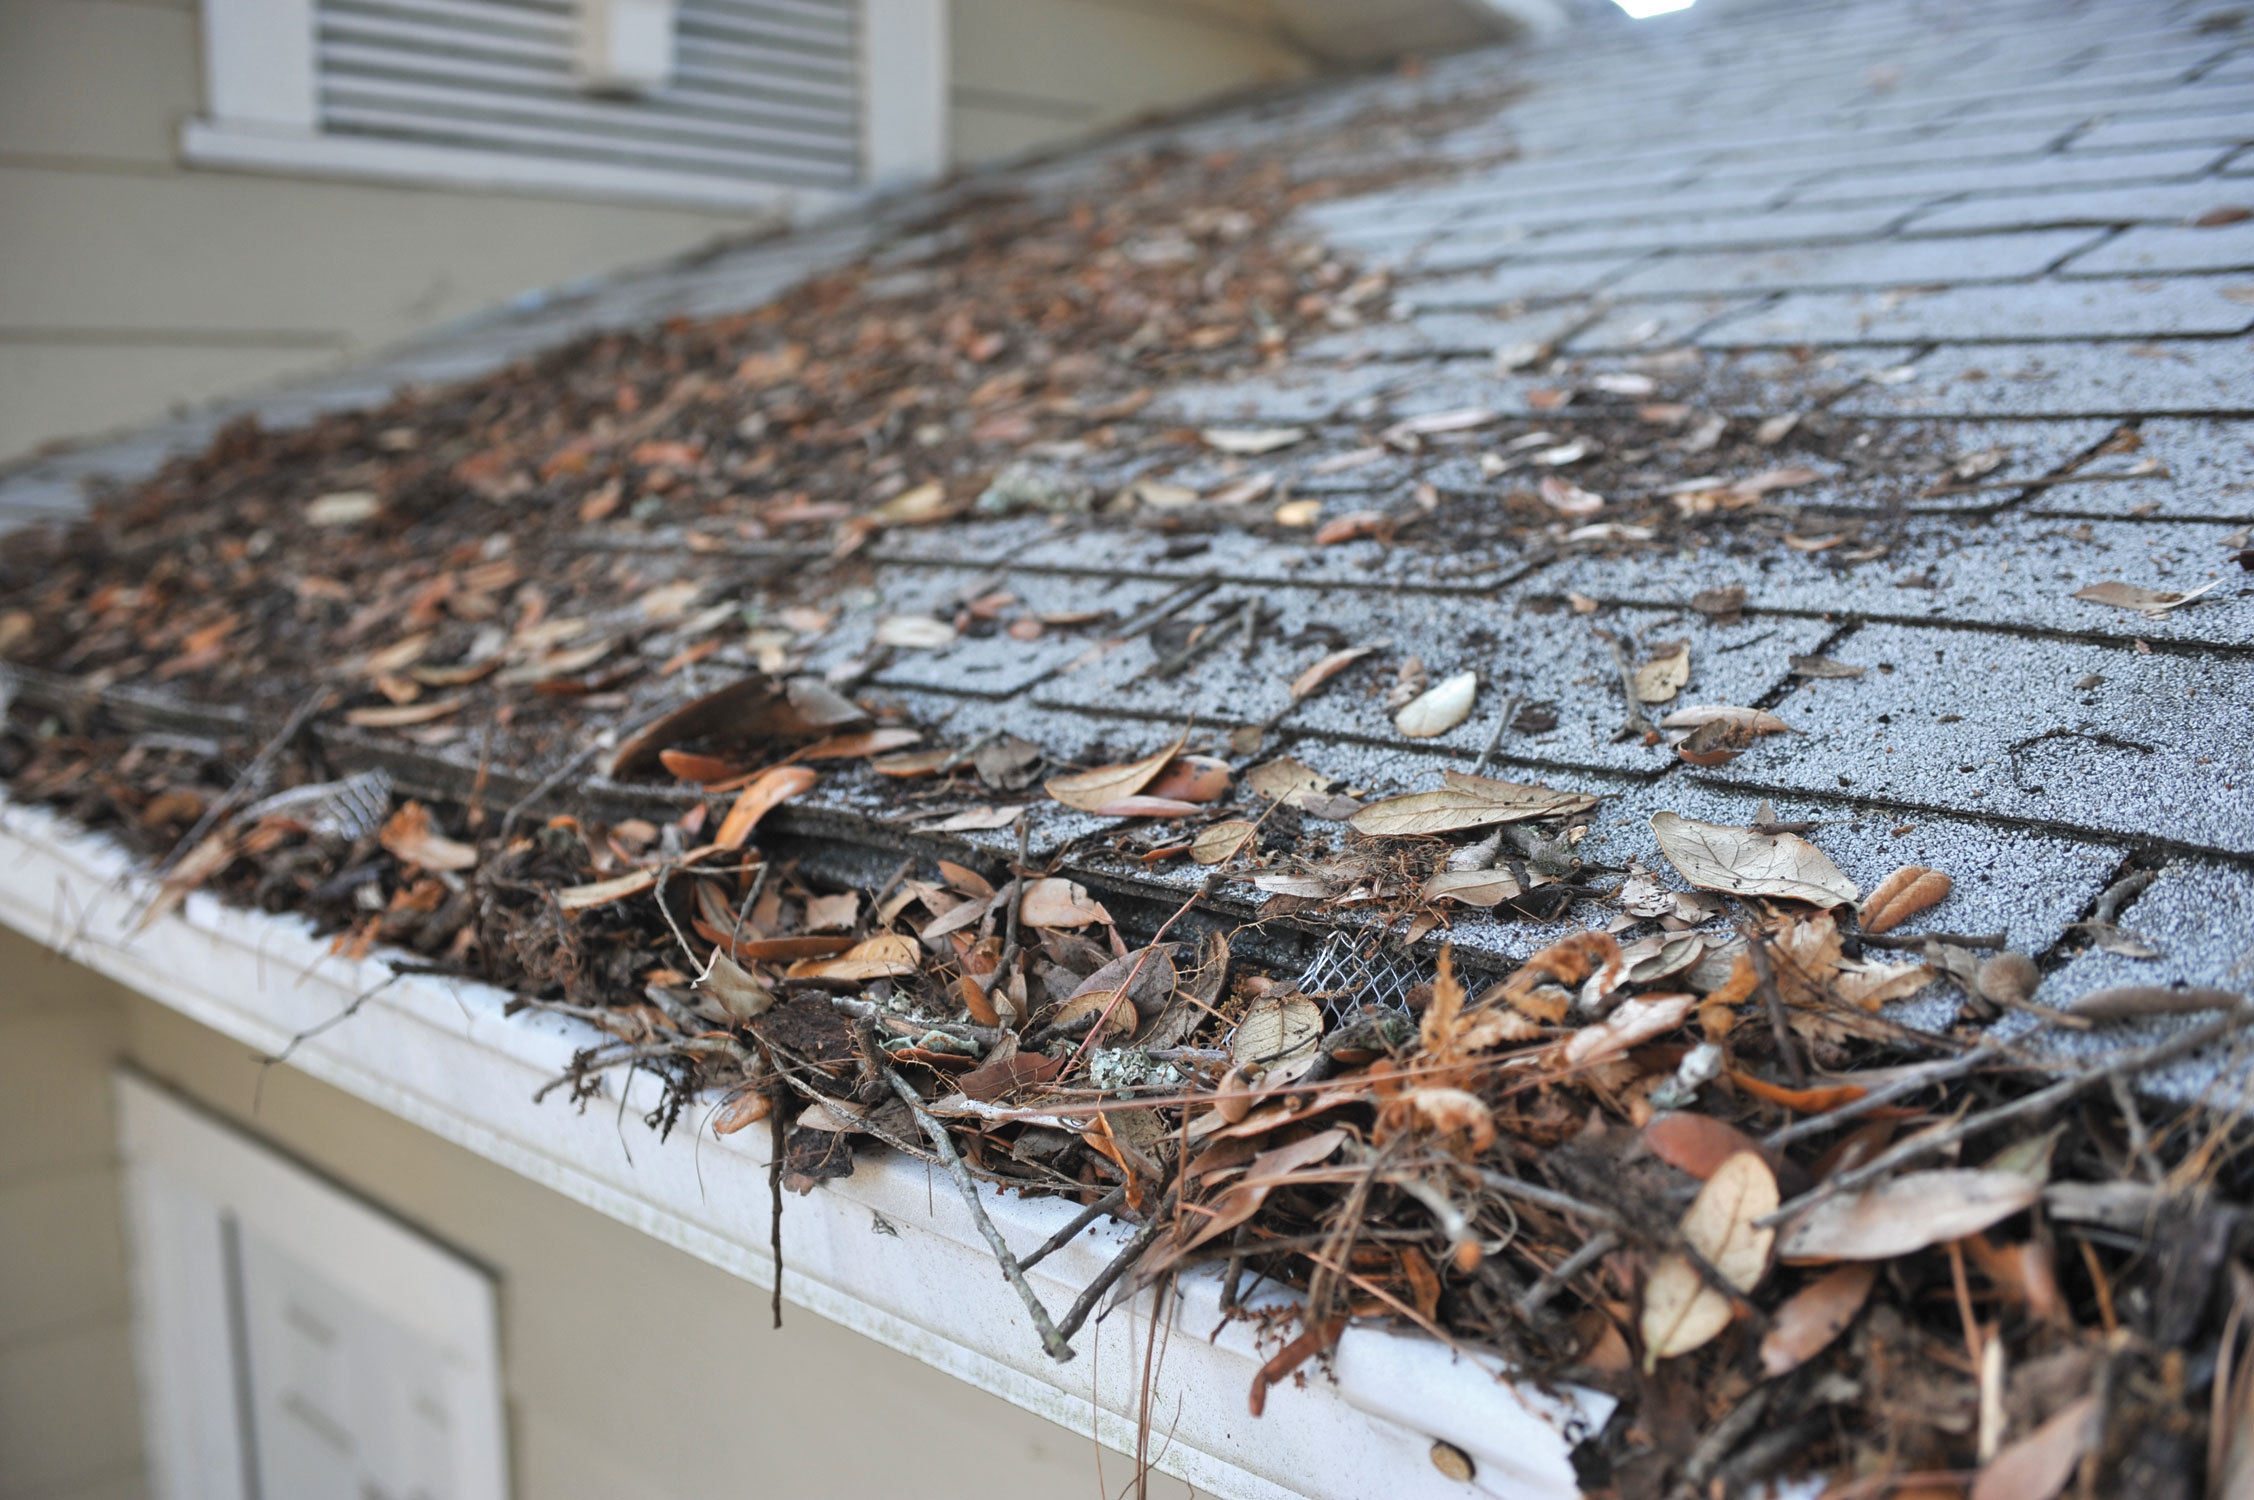 A Gutter Screen Will Help Keep Debris Out Of Your Gutters